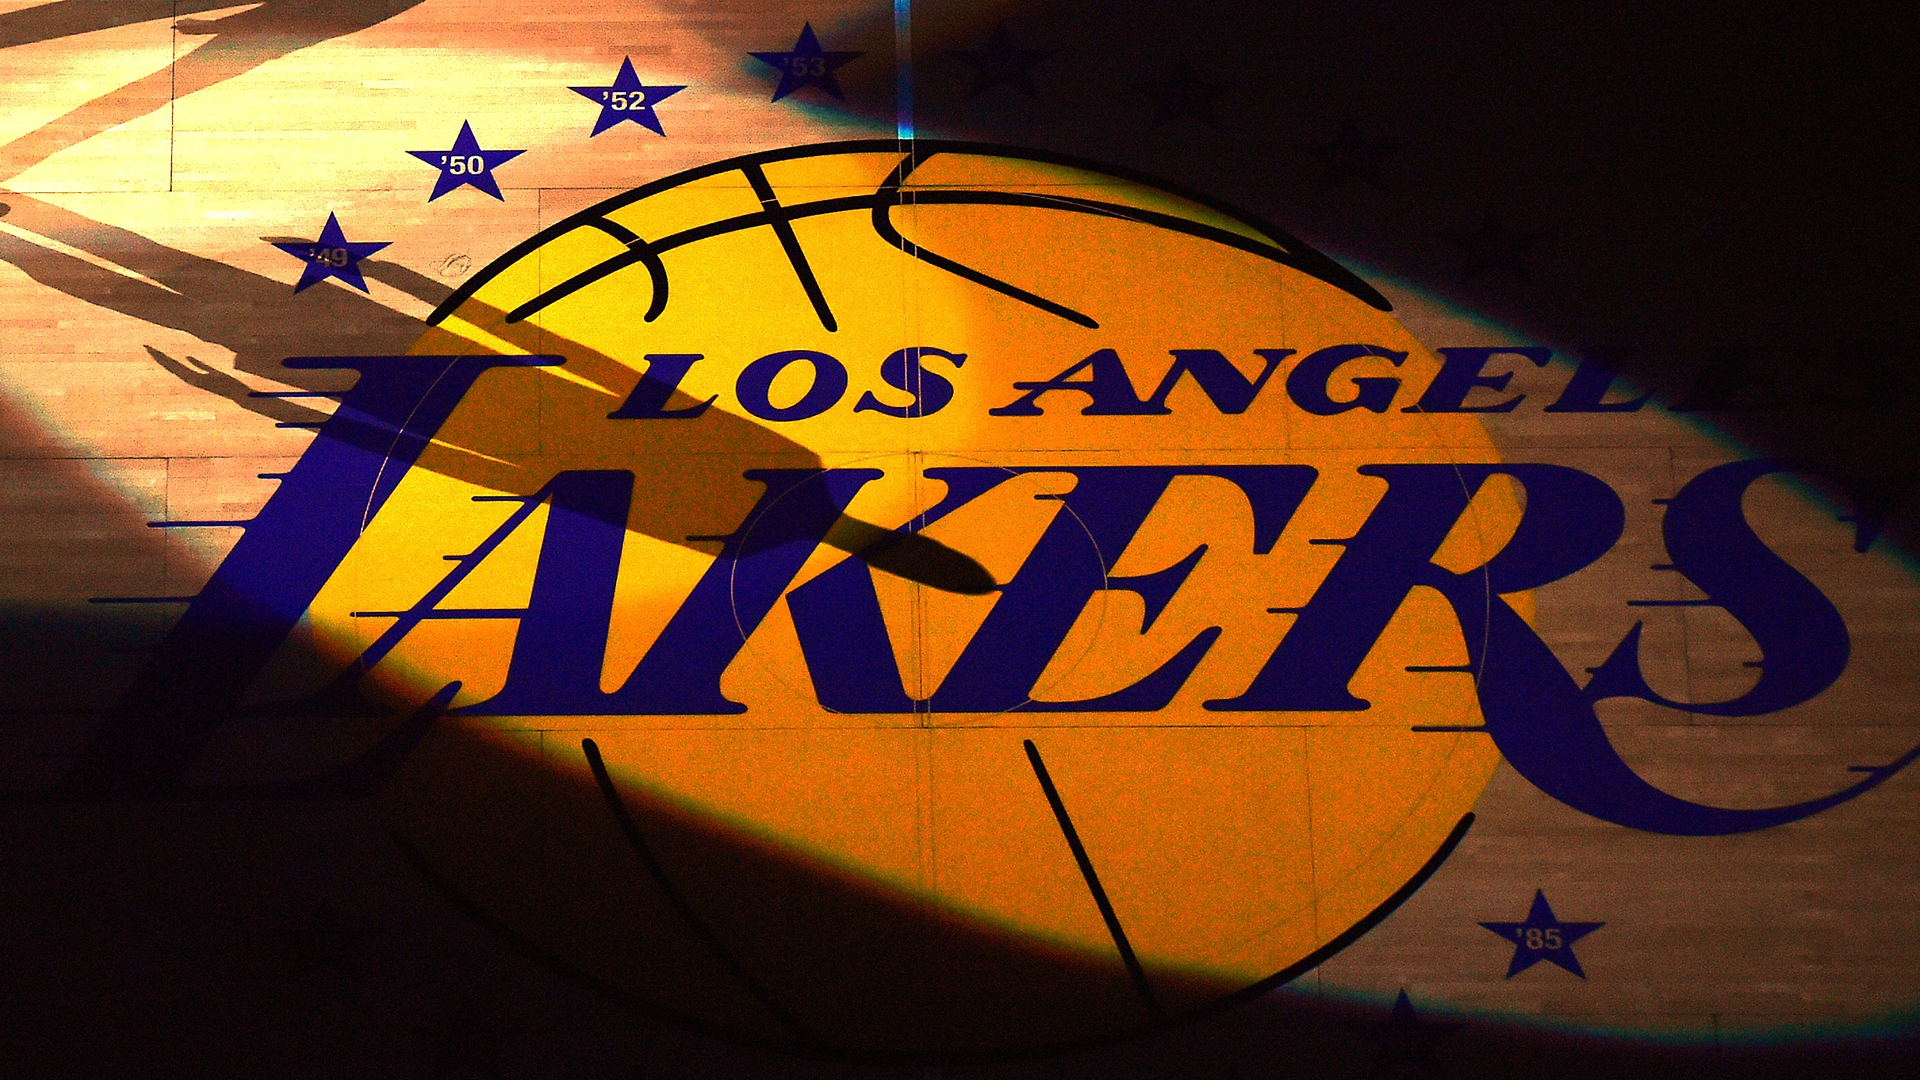 The Lakers logo is seen at center court inside the Staples Center on Dec. 18, 2017. (Credit: Harry How / Getty Images)